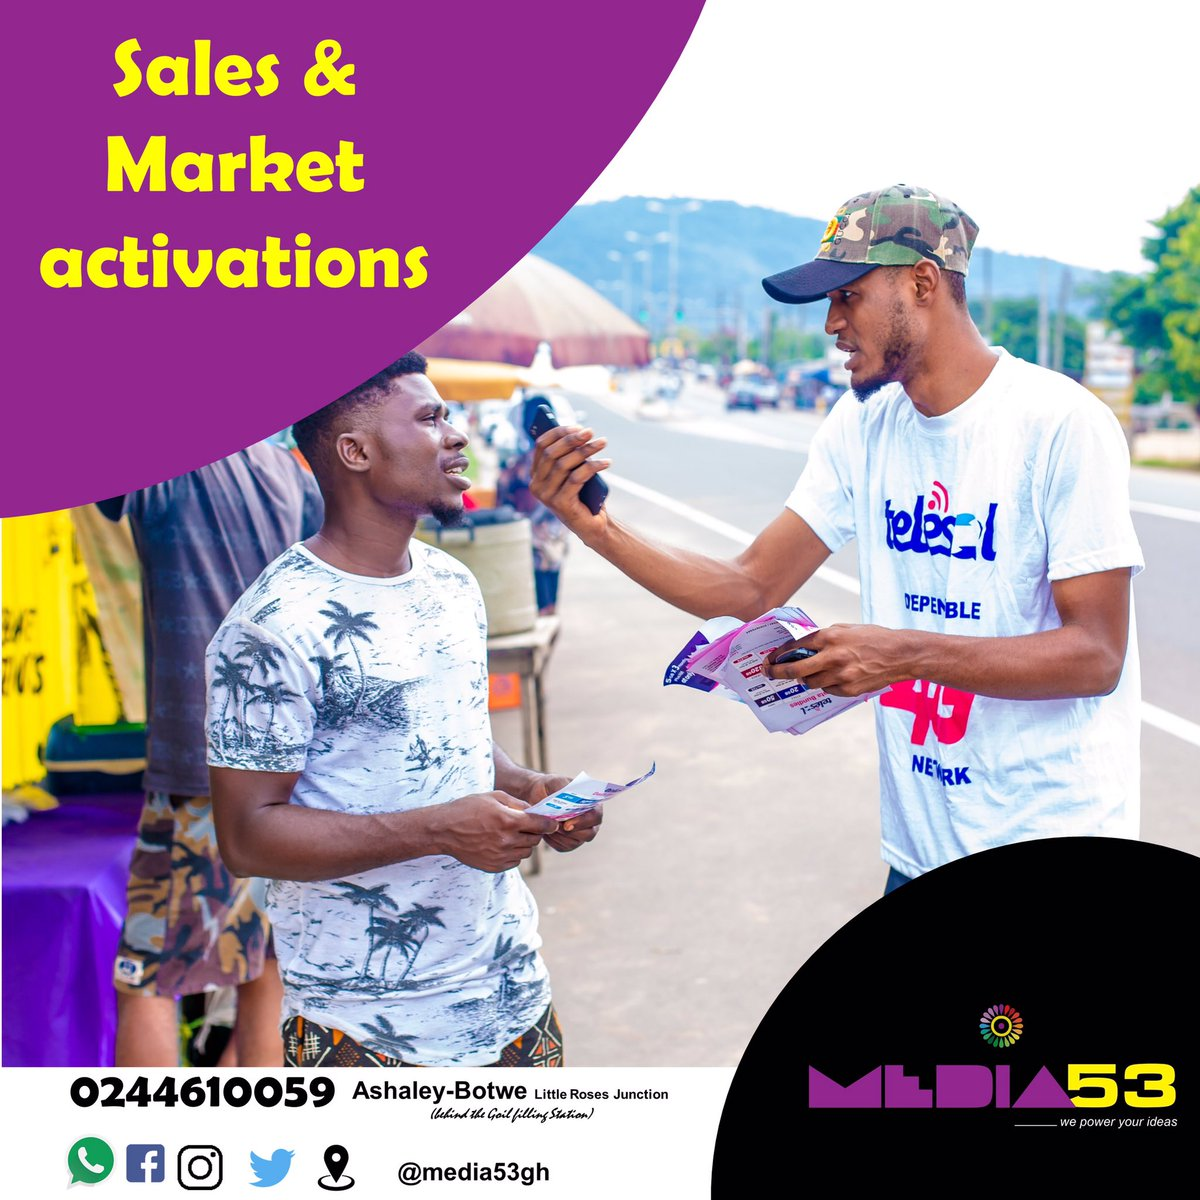 Let us help you sale your brand and products                               #Media53gh   #ghanawedding   #GhanaNews   #media   #productions    #events https://t.co/xVA3bLDEuw